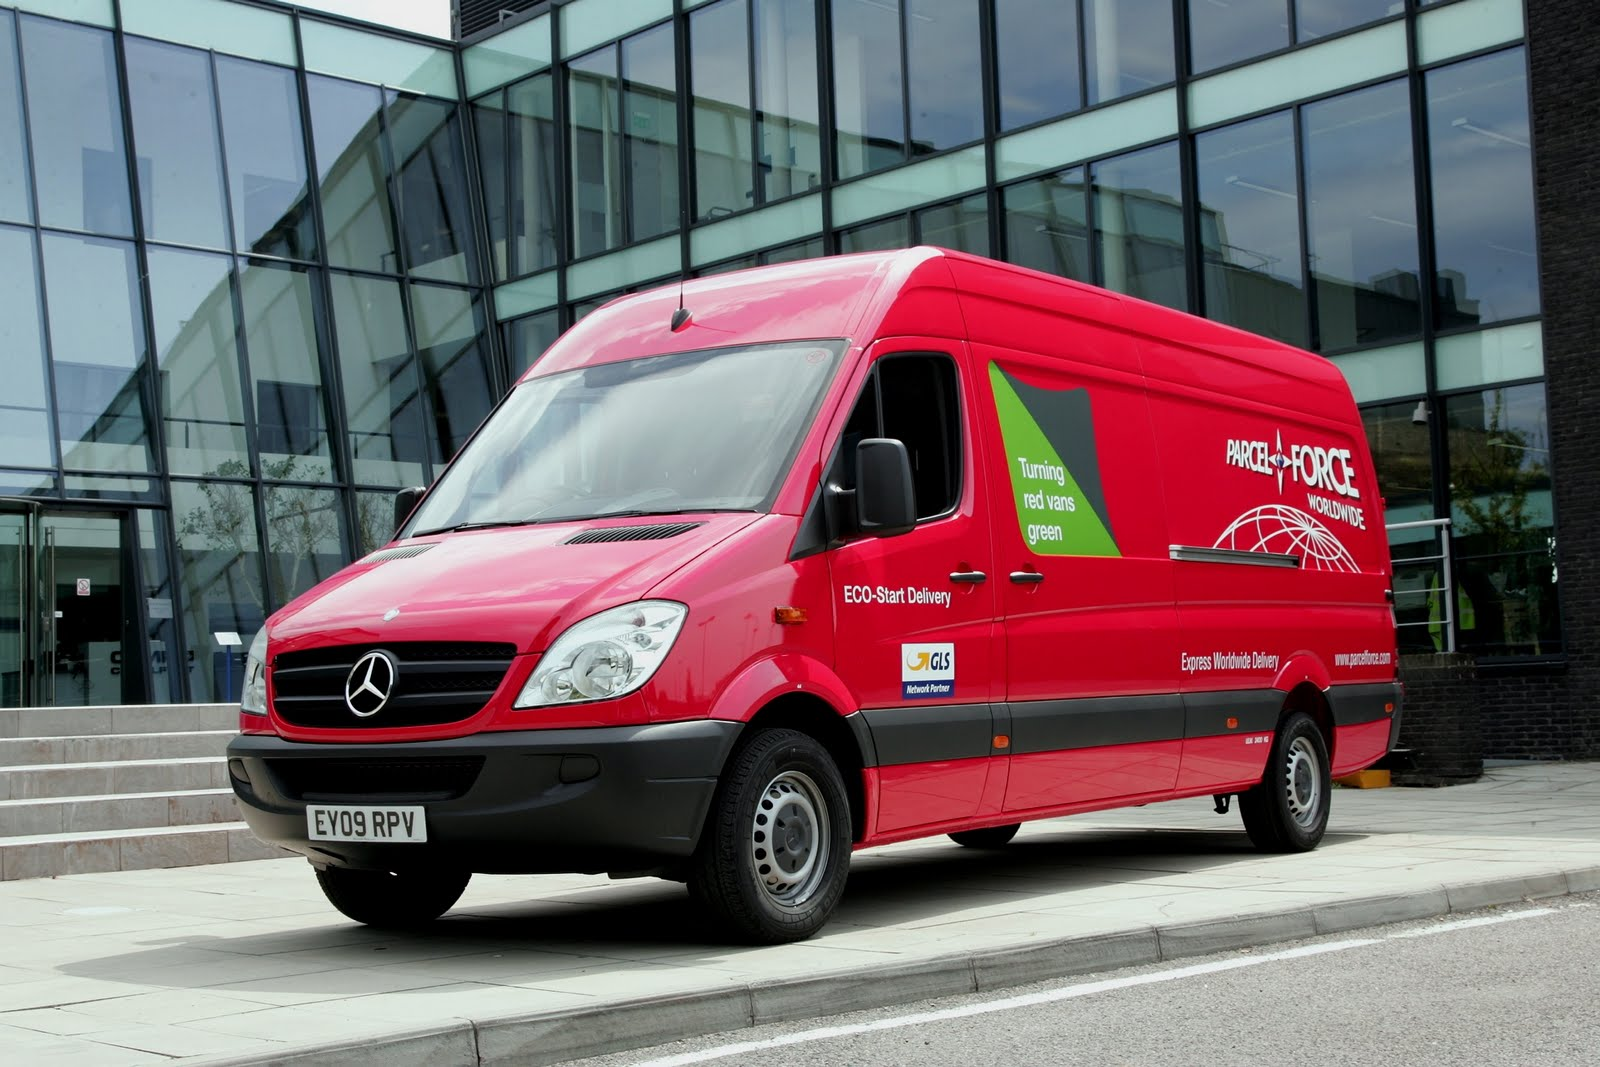 Parcelforce Van